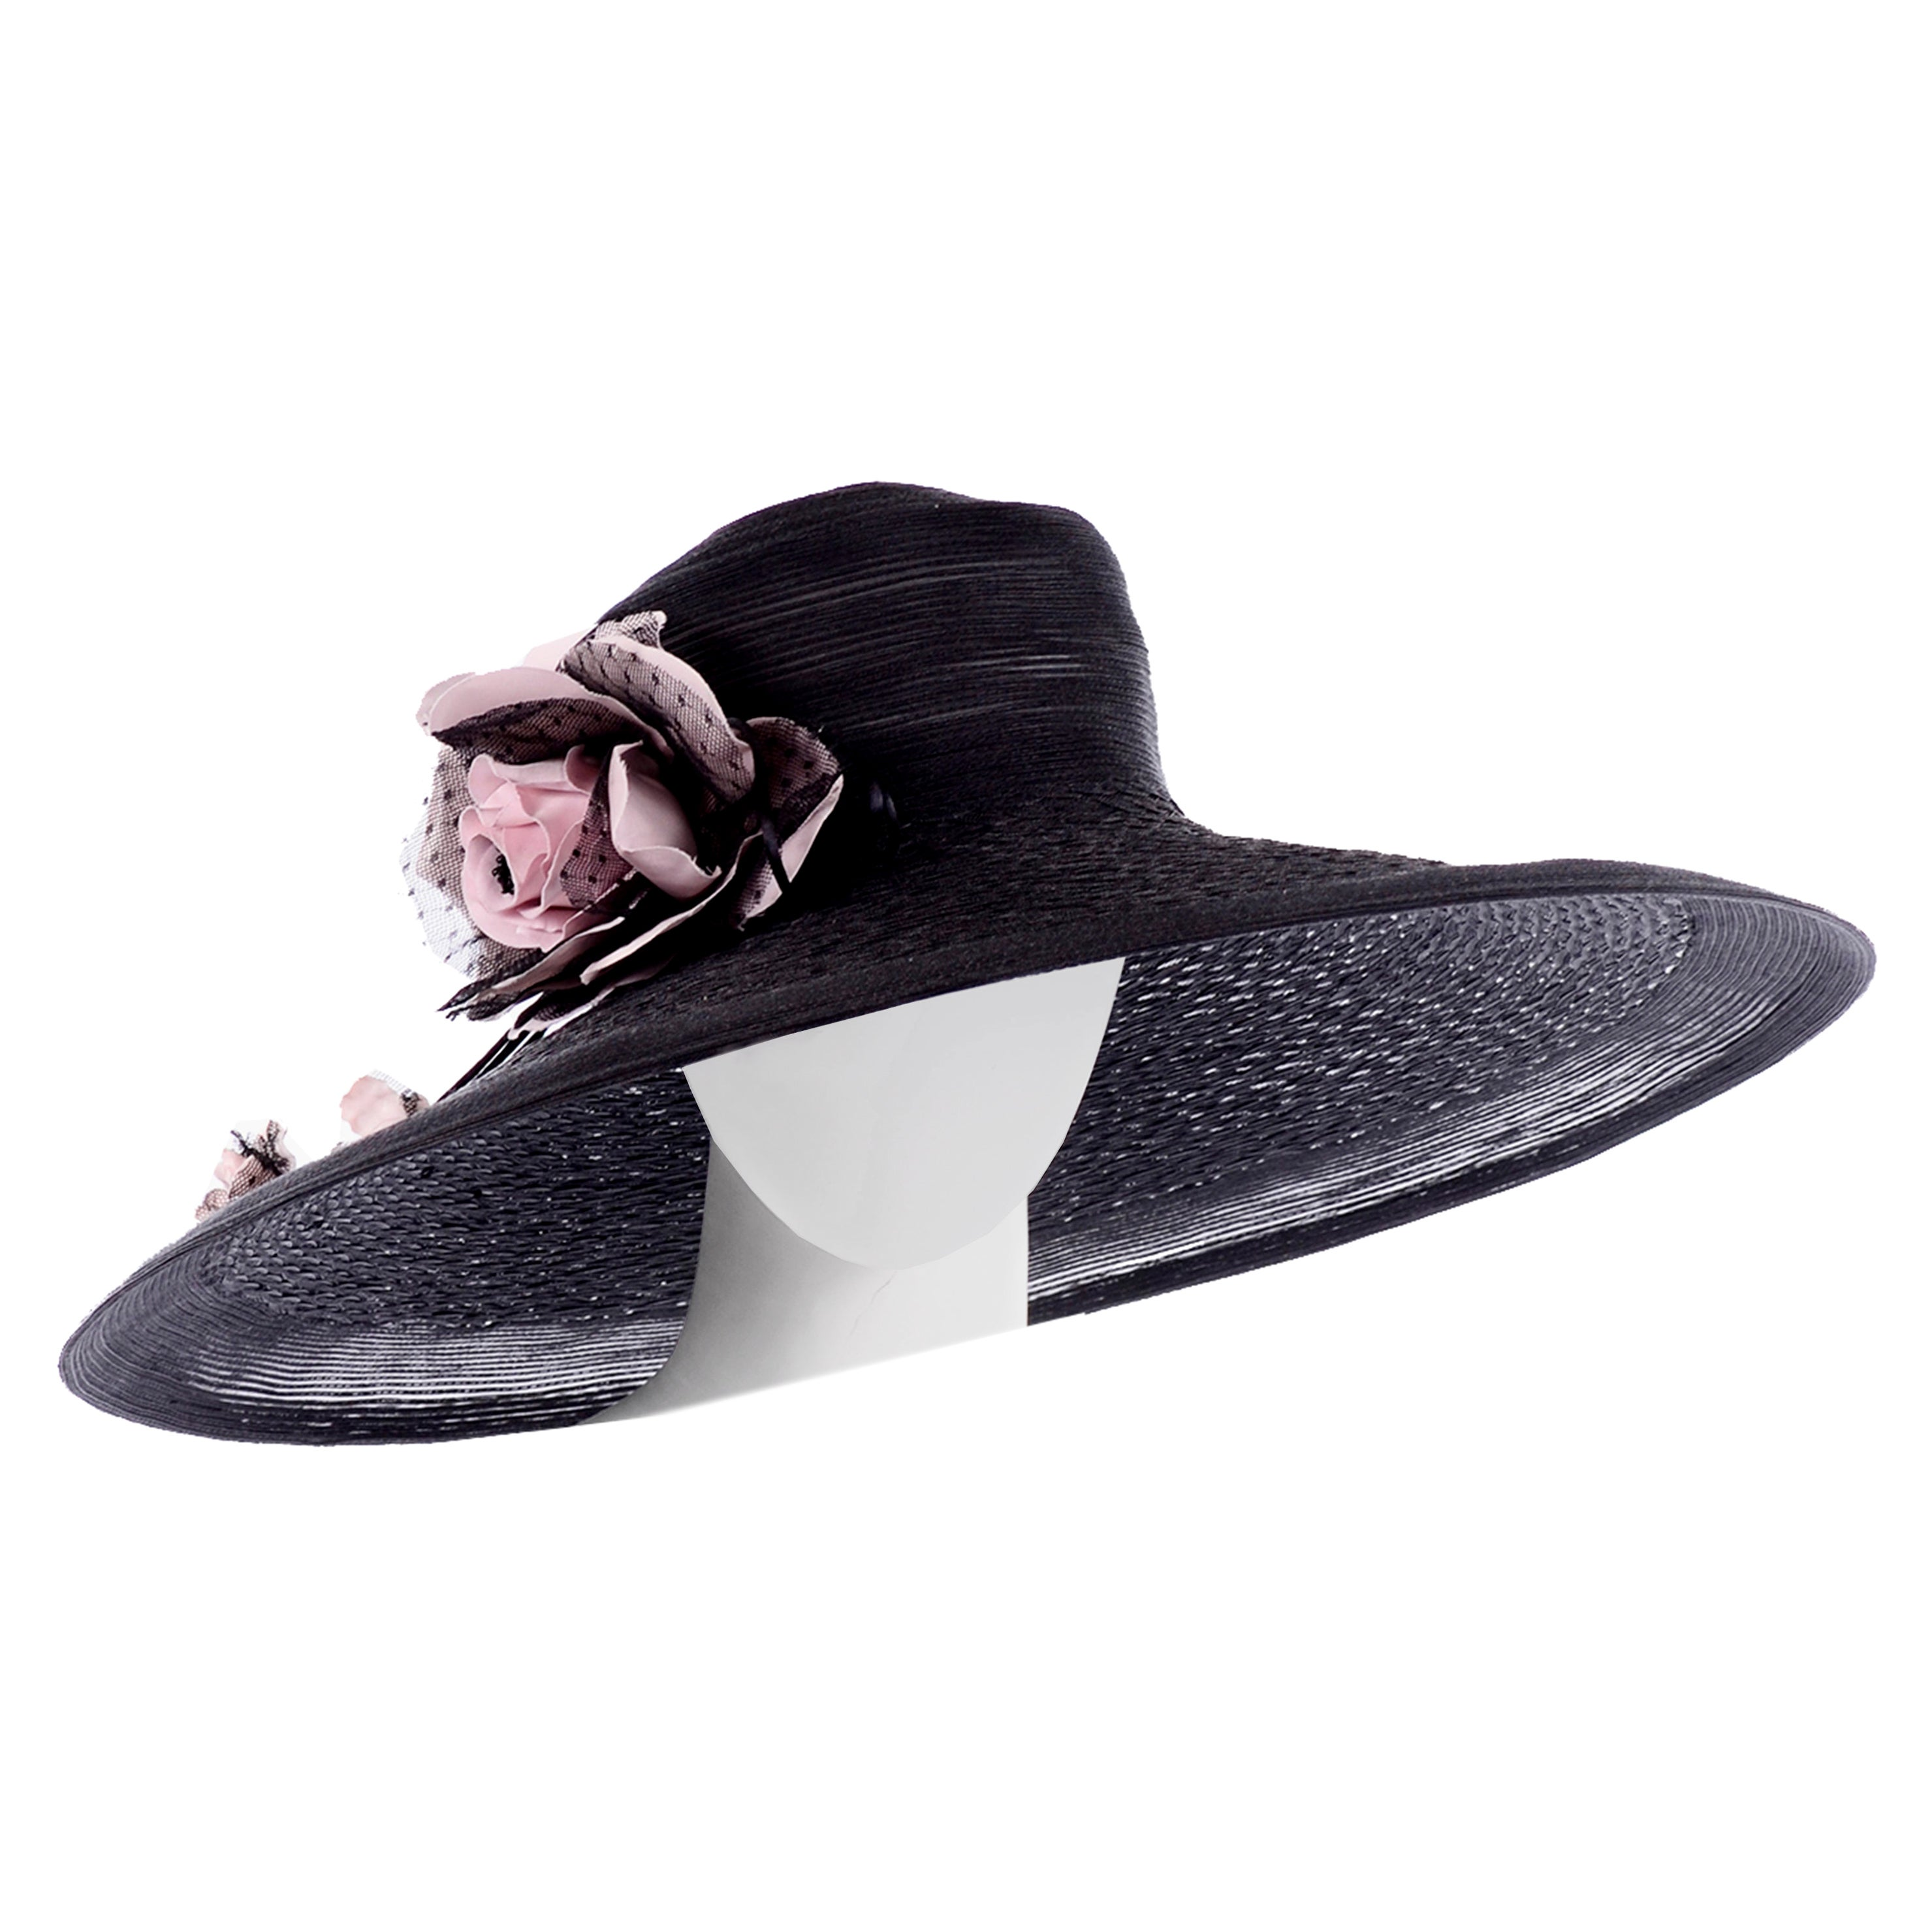 Frank Olive Neiman Marcus Vintage Black Straw Hat w/ Pink Roses & Lace